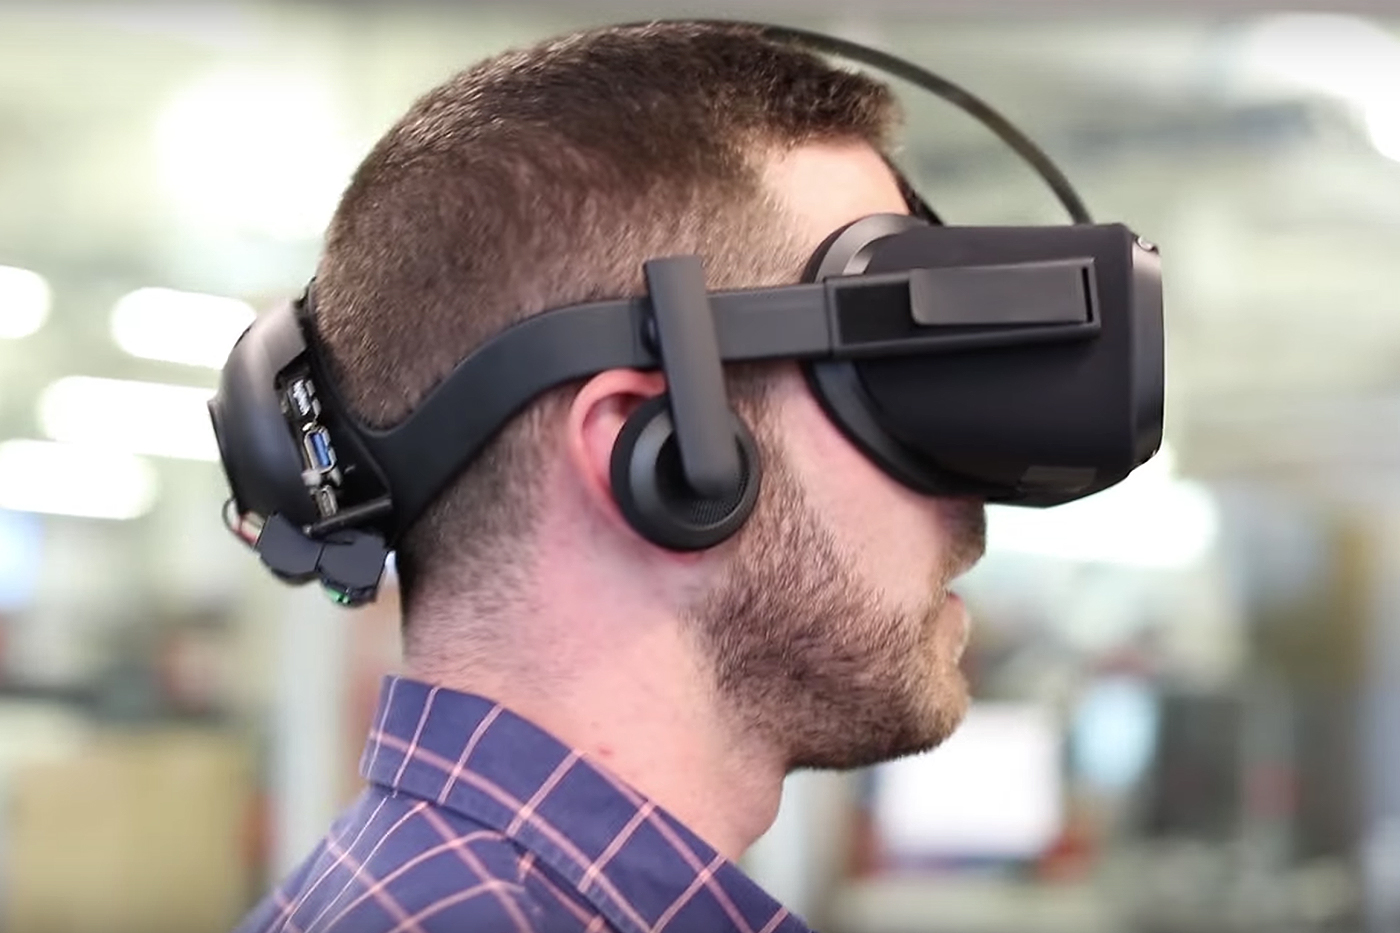 Oculus Santa Cruz Headset Prototype - worn by a man, closeup.